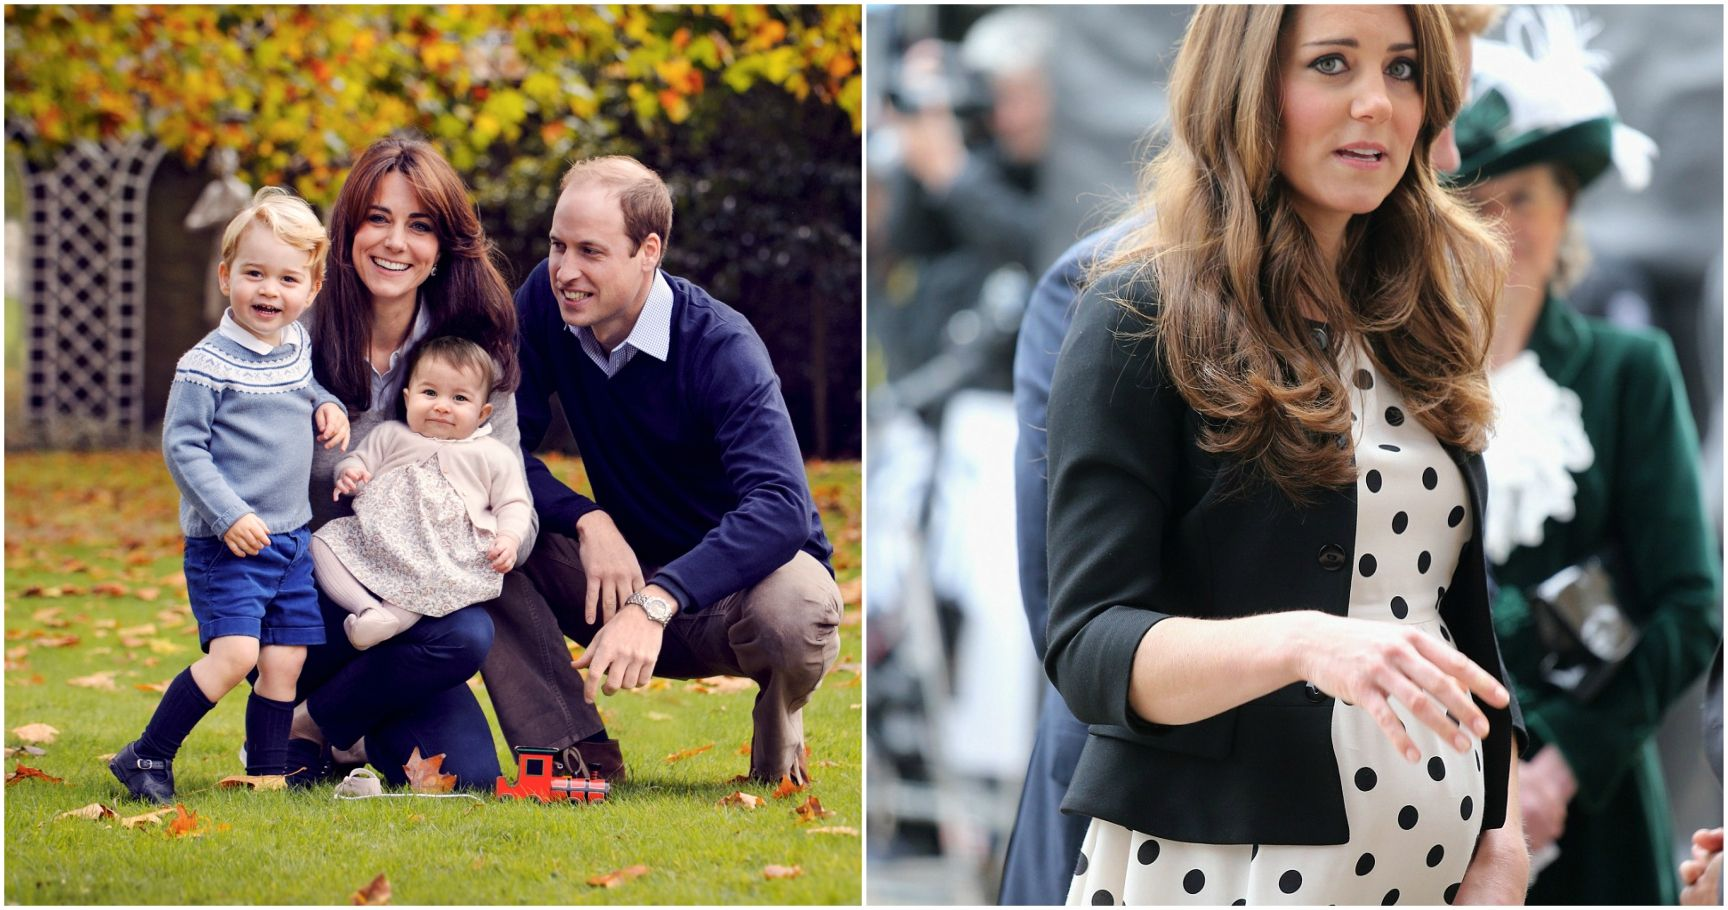 11 Reasons Why Being Kate Middleton Actually Sucks